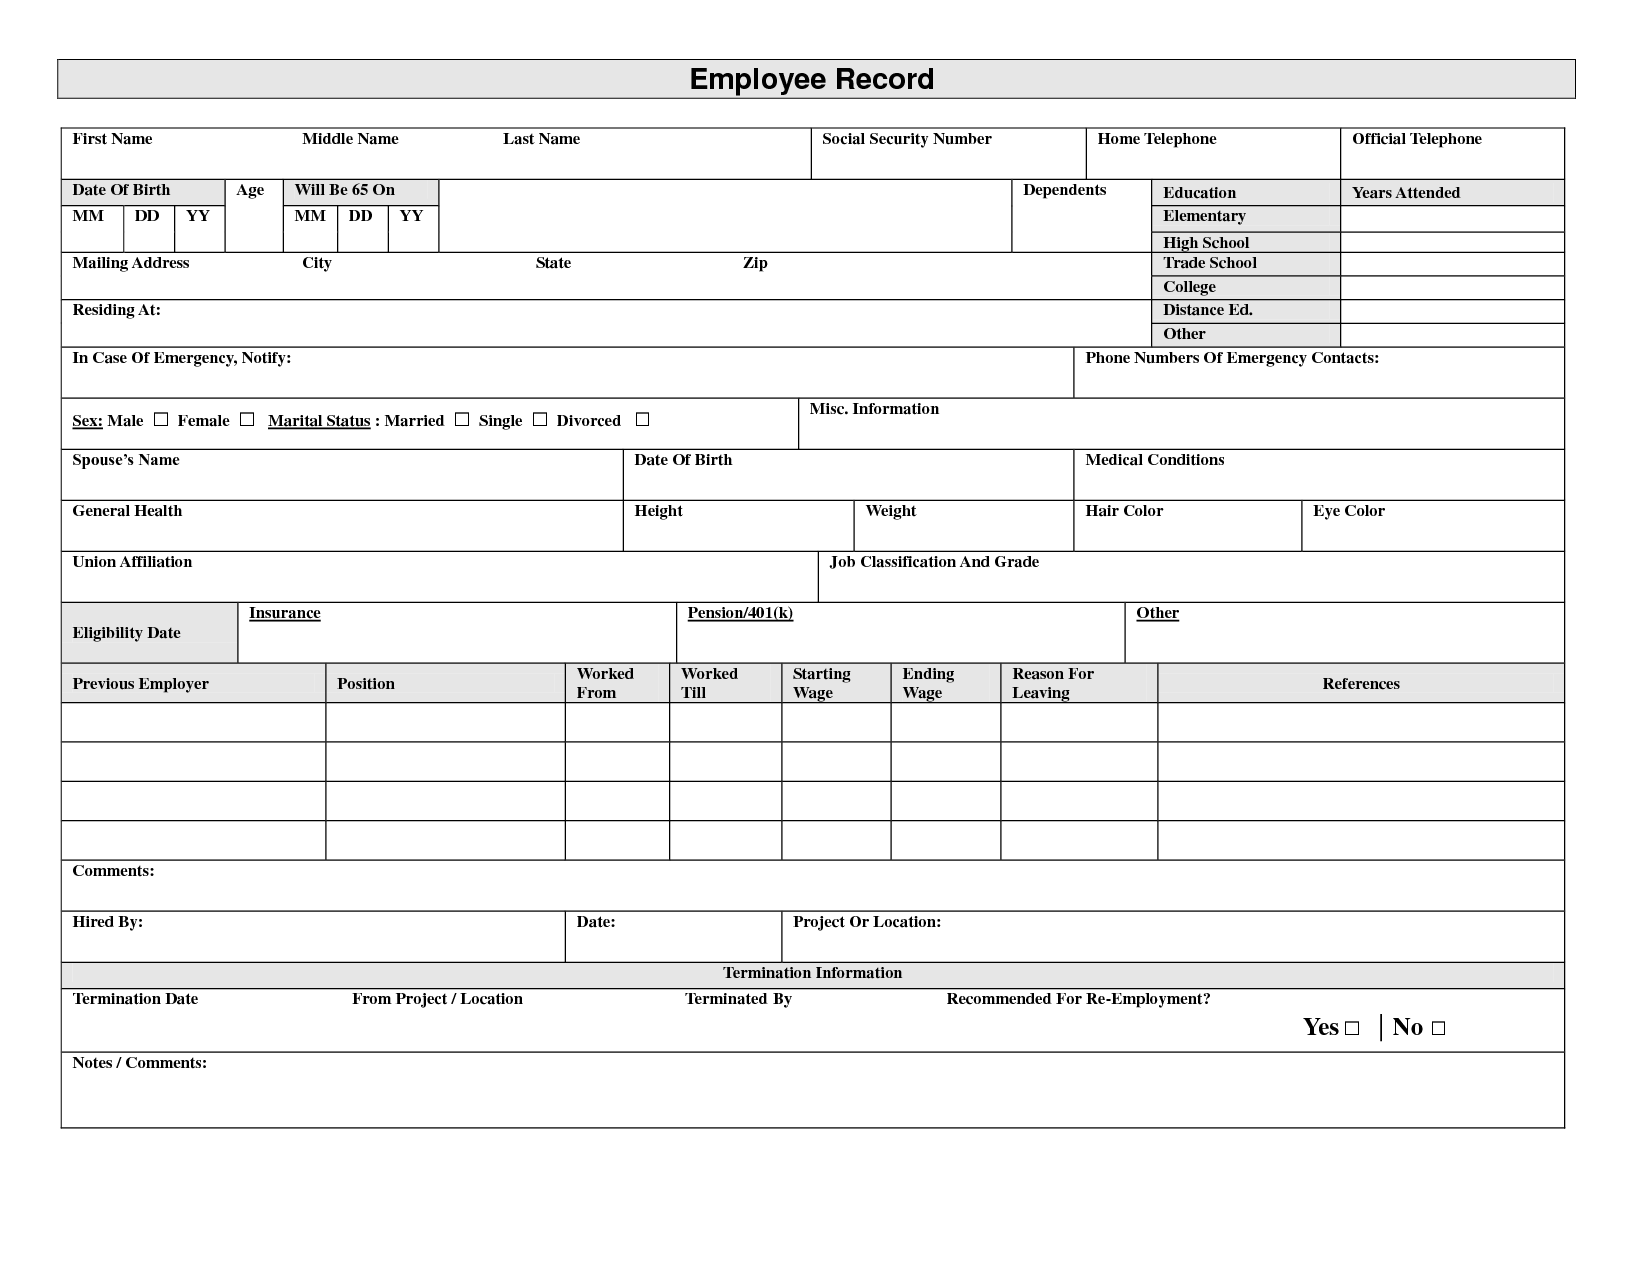 printable job estimate forms job estimate office form image click here to this template file size 461 x 461 pixels bytes image job application template fil